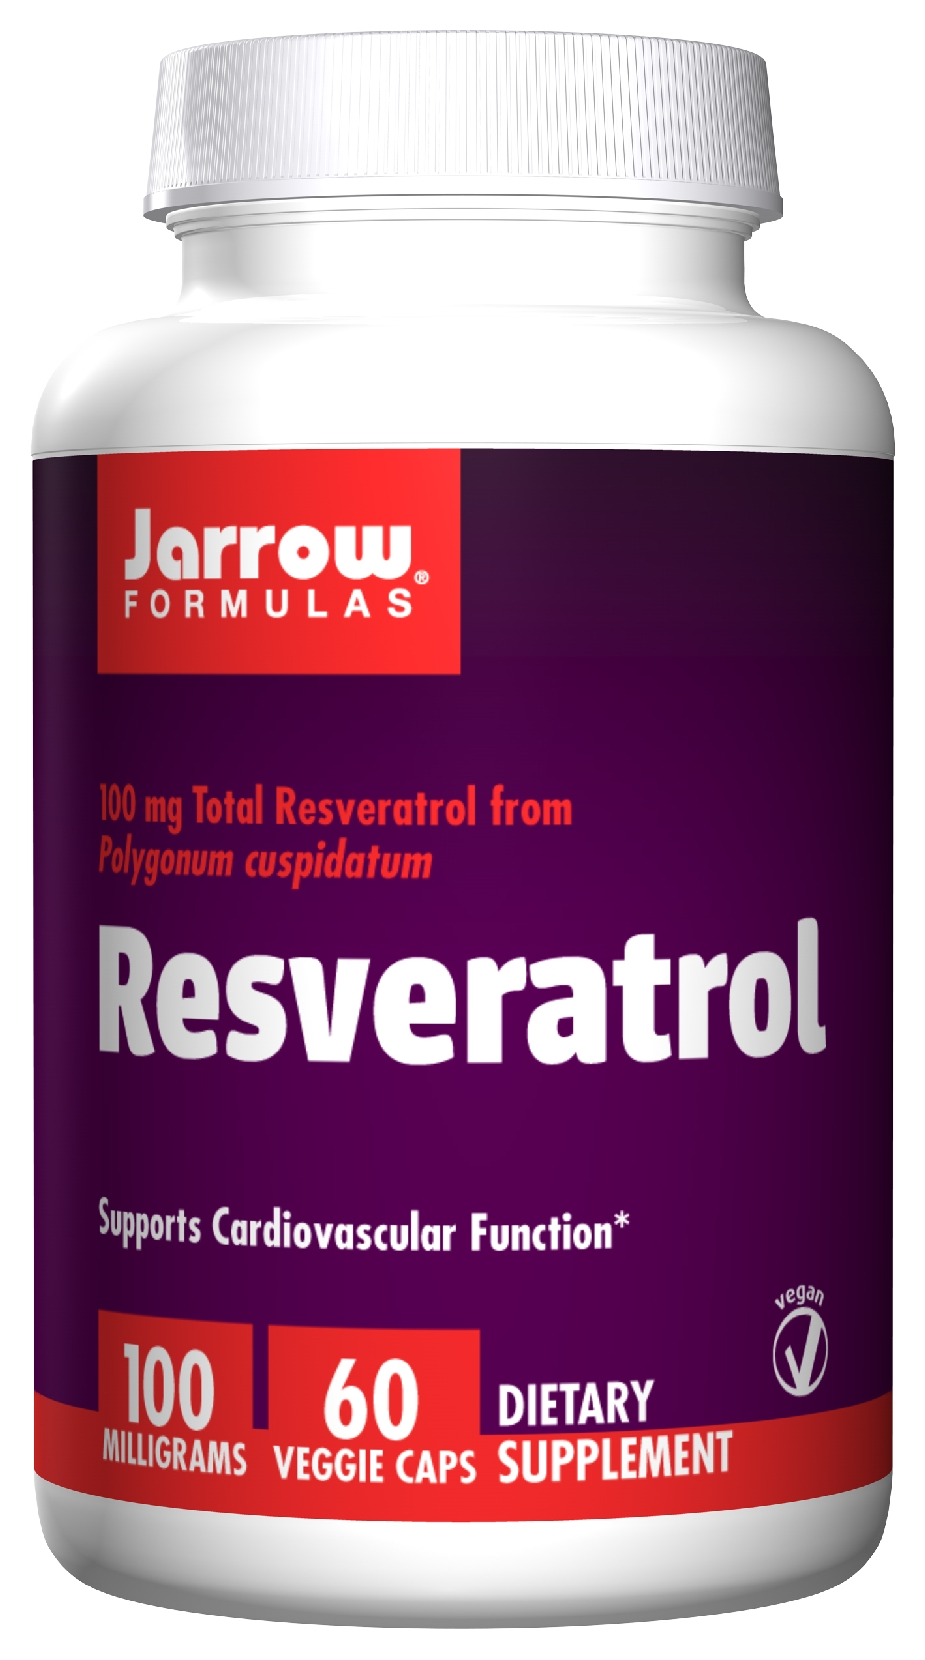 Resveratrol 100 60 Vegetarian caps by Jarrow Formulas